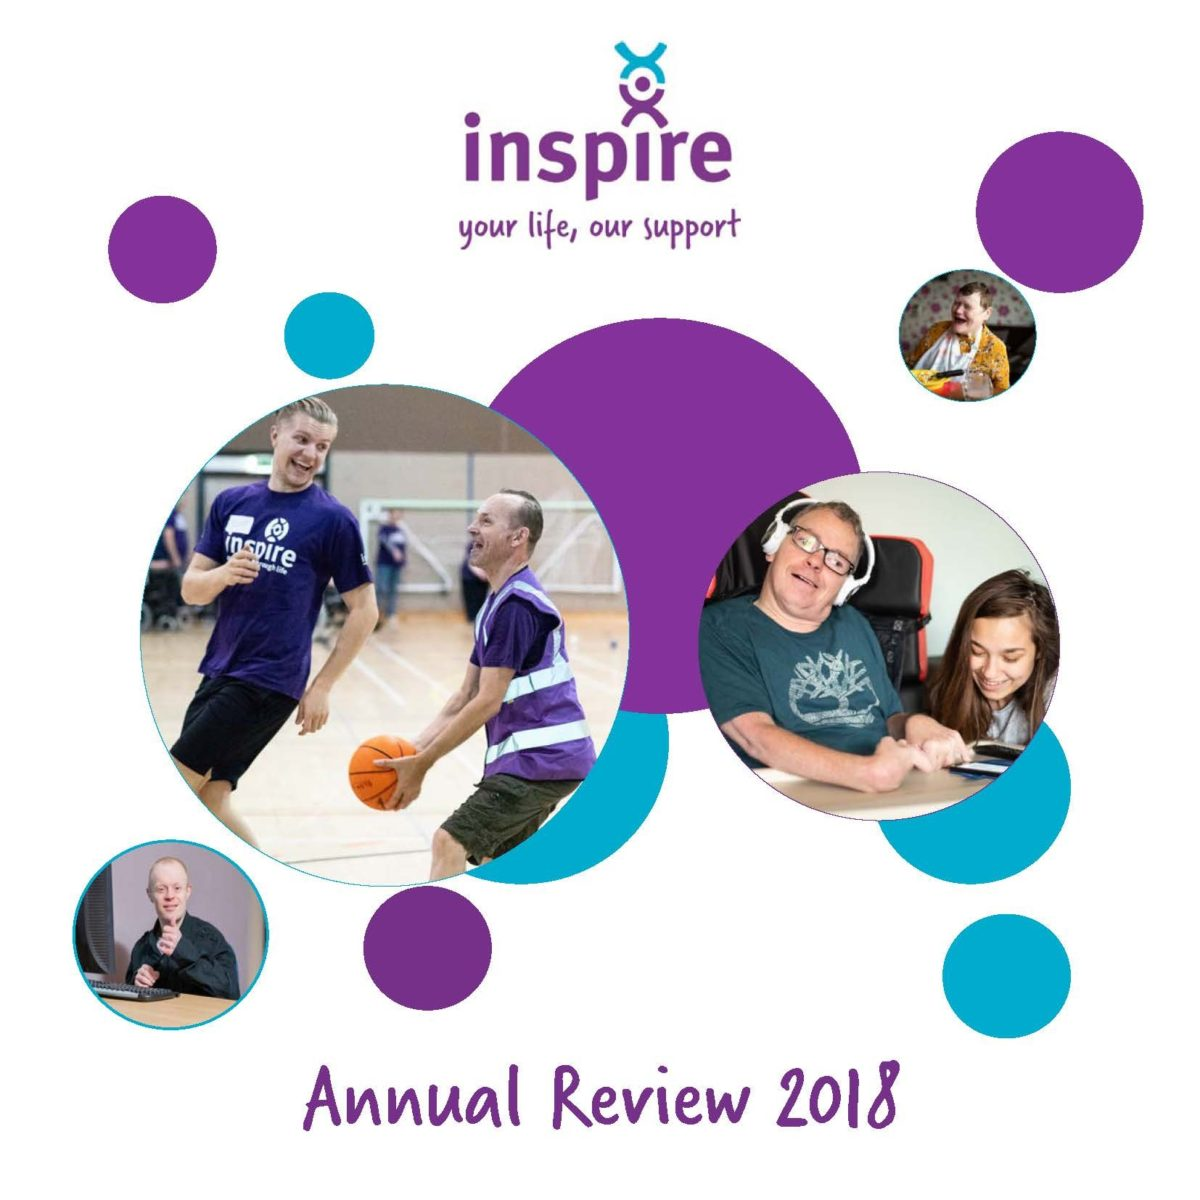 Annual Review 2018 front cover